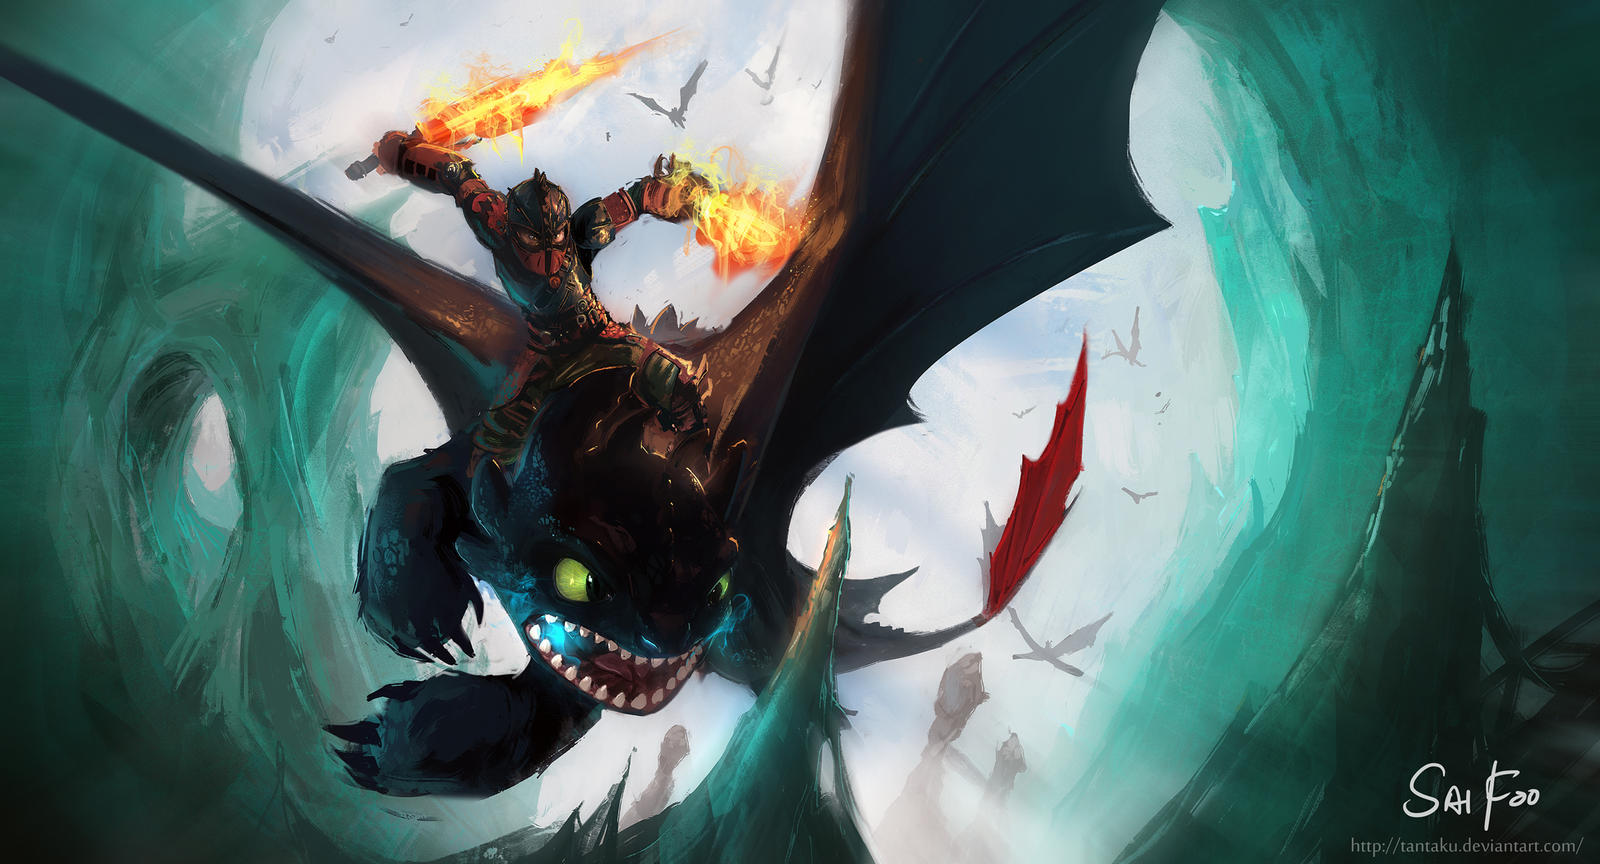 How to train your dragon 2 by tantaku on deviantart how to train your dragon 2 by tantaku ccuart Choice Image